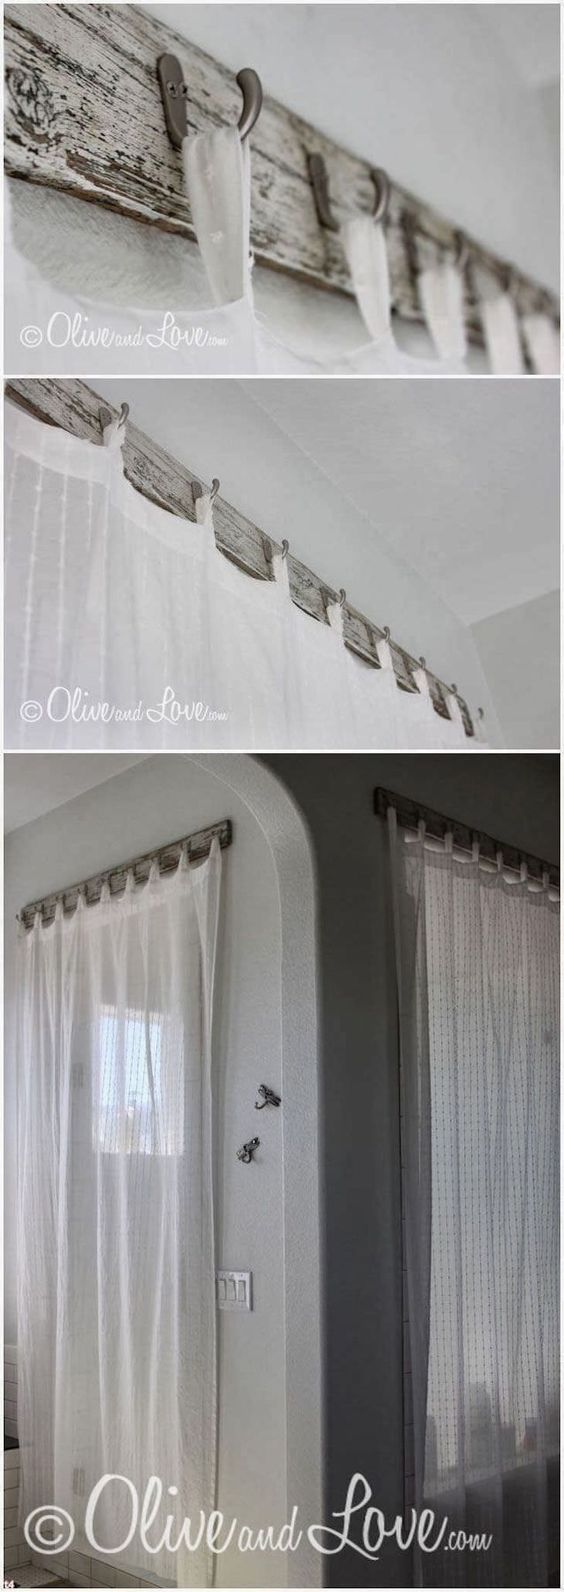 best home images on pinterest bedrooms bricolage and cool ideas